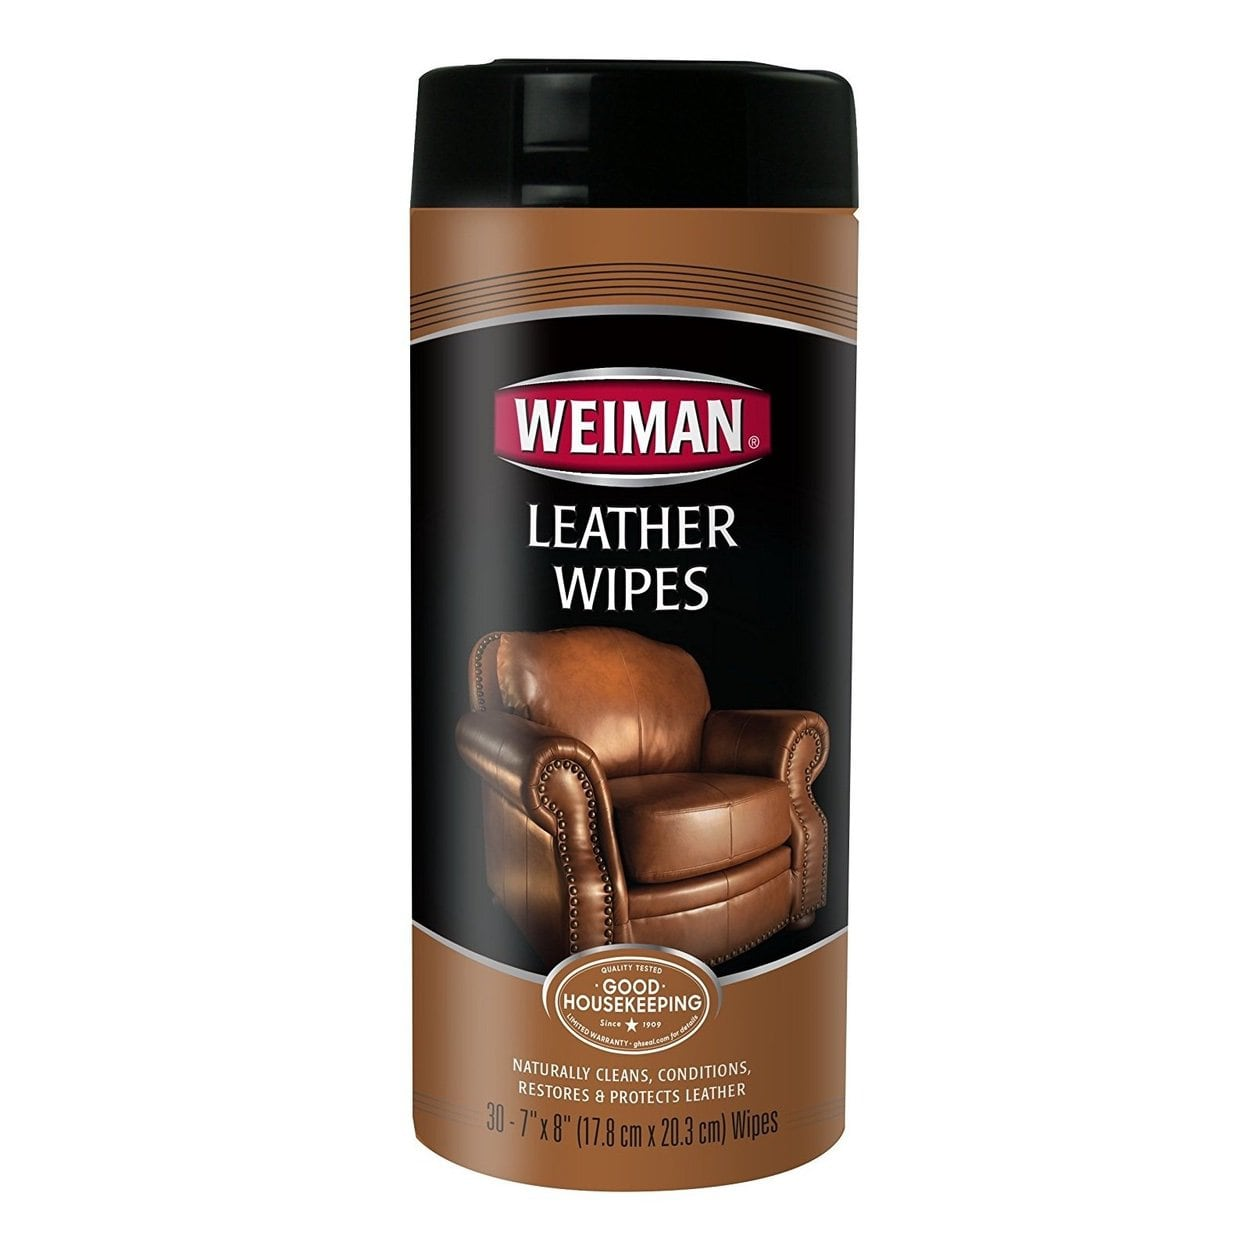 Photo of Weiman Leather Wipes 30s